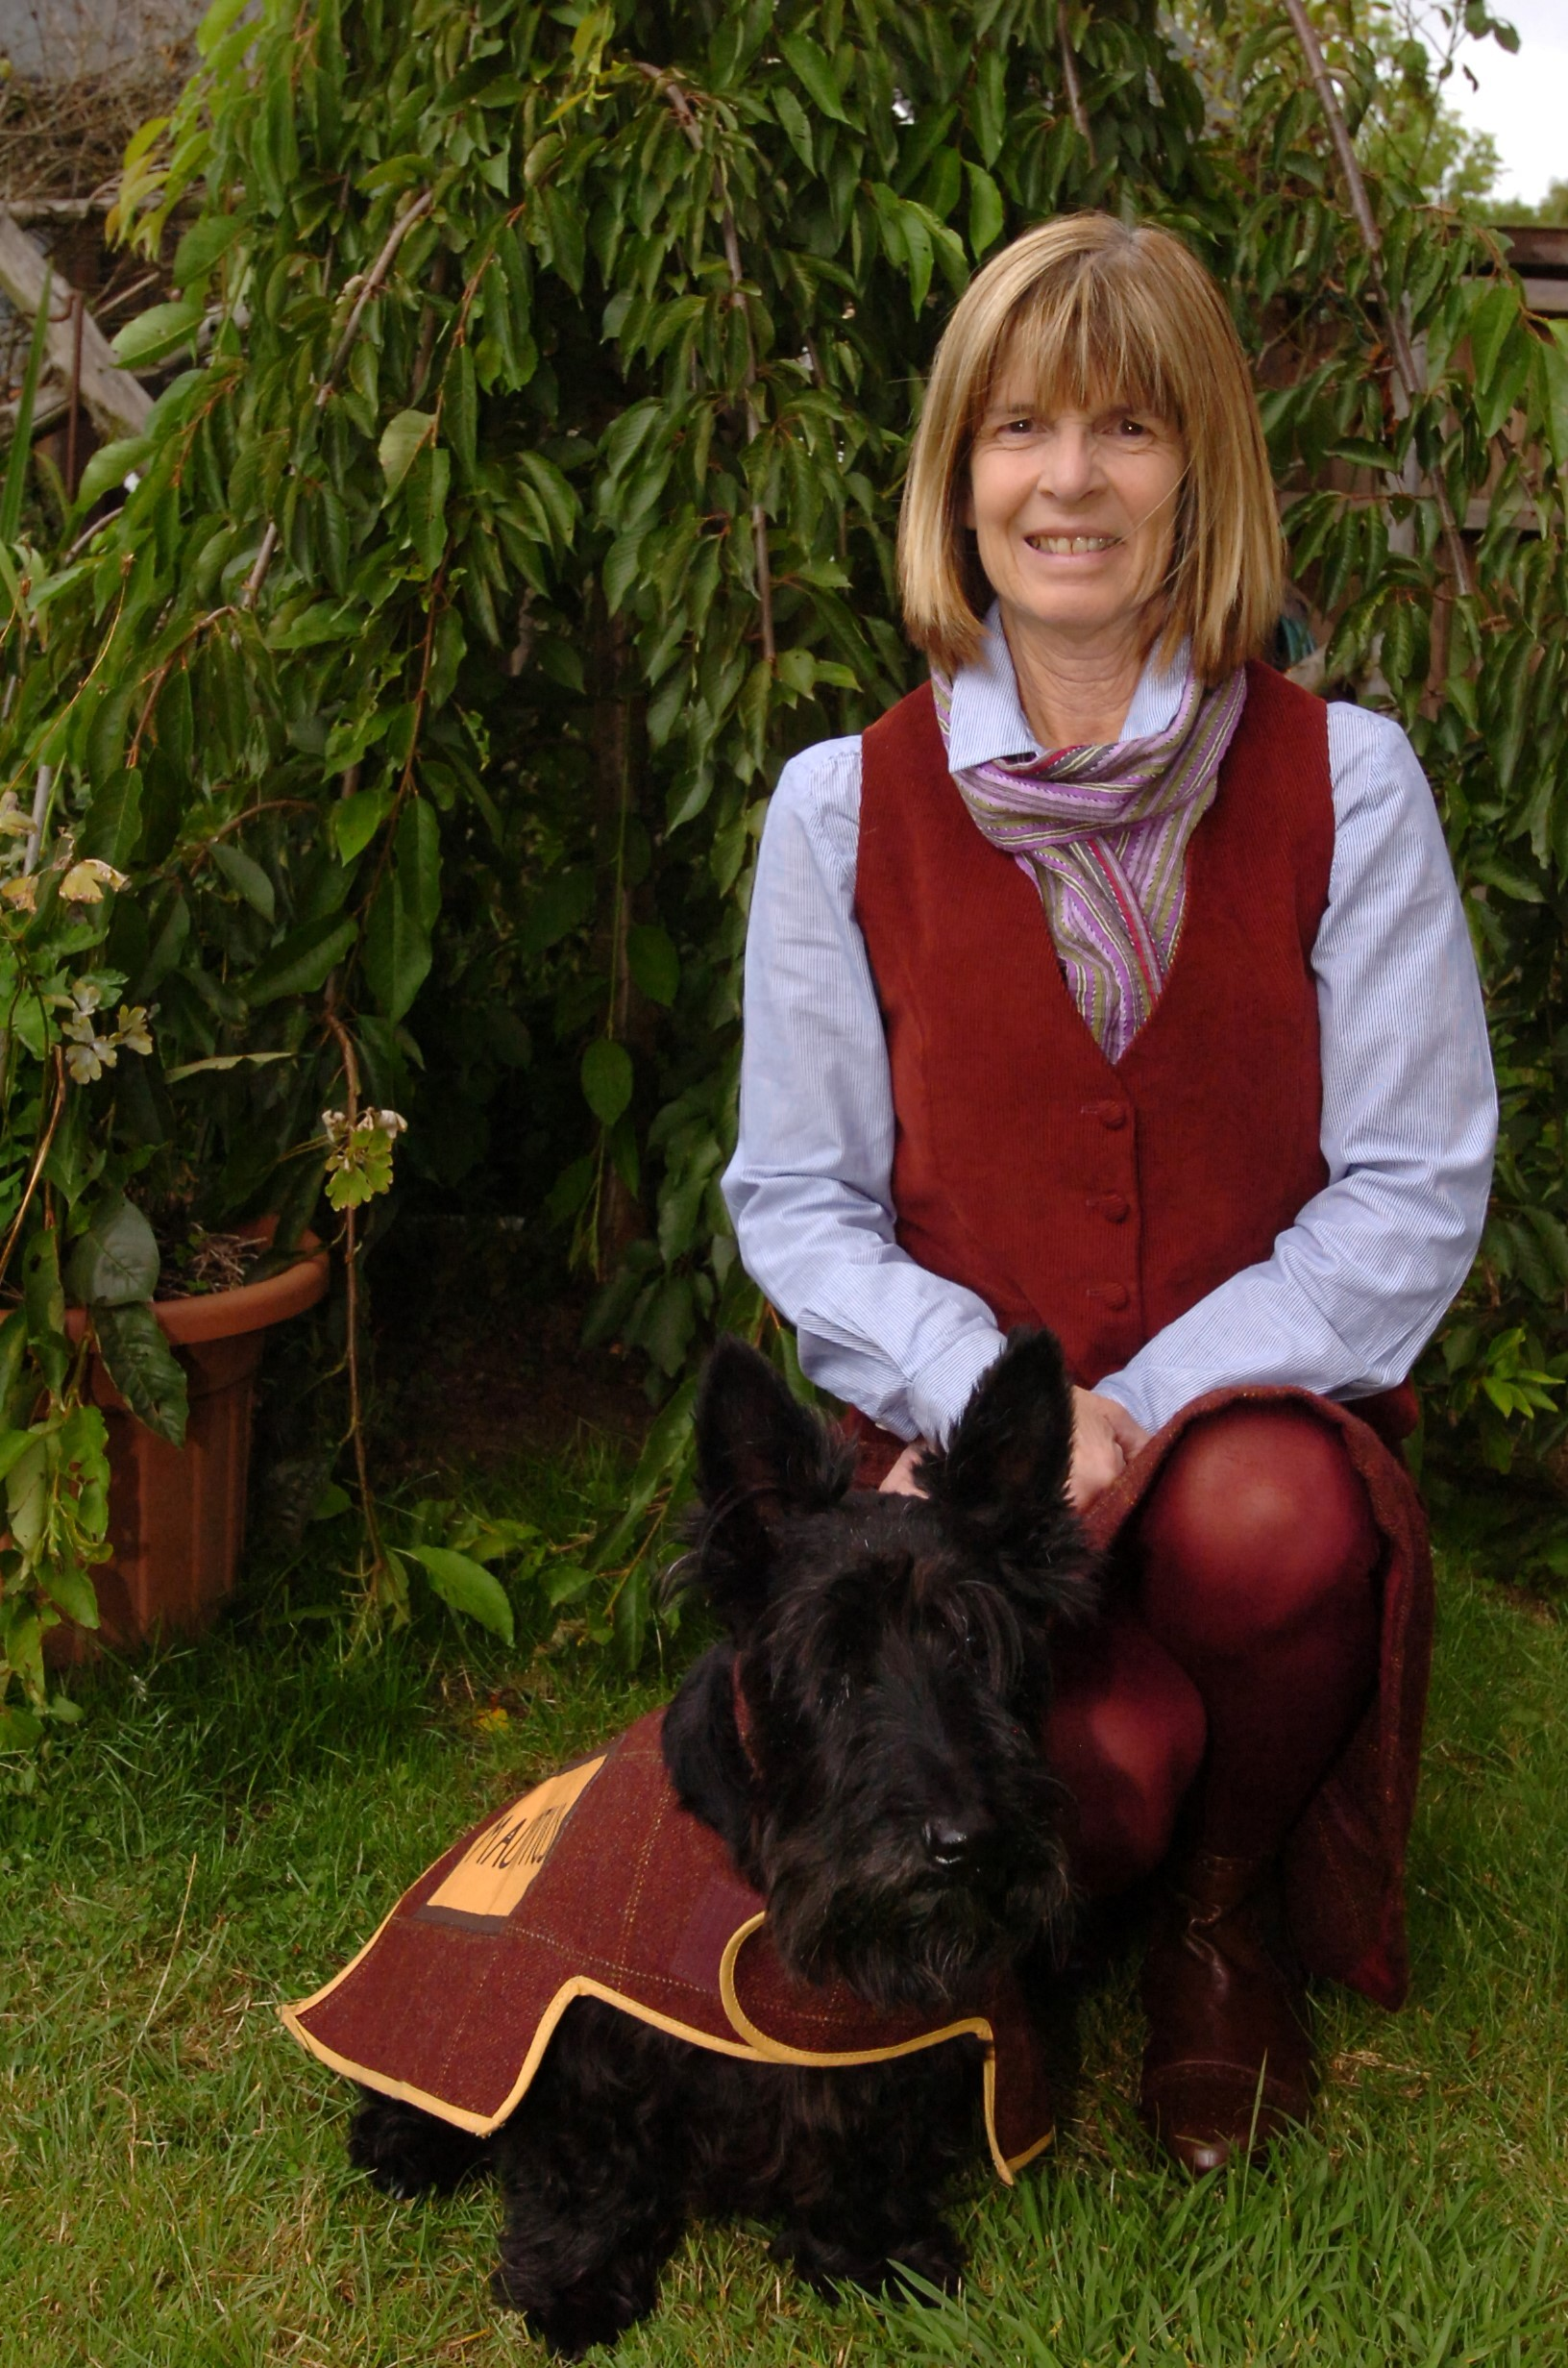 Star turn for Hereford Scottie dog